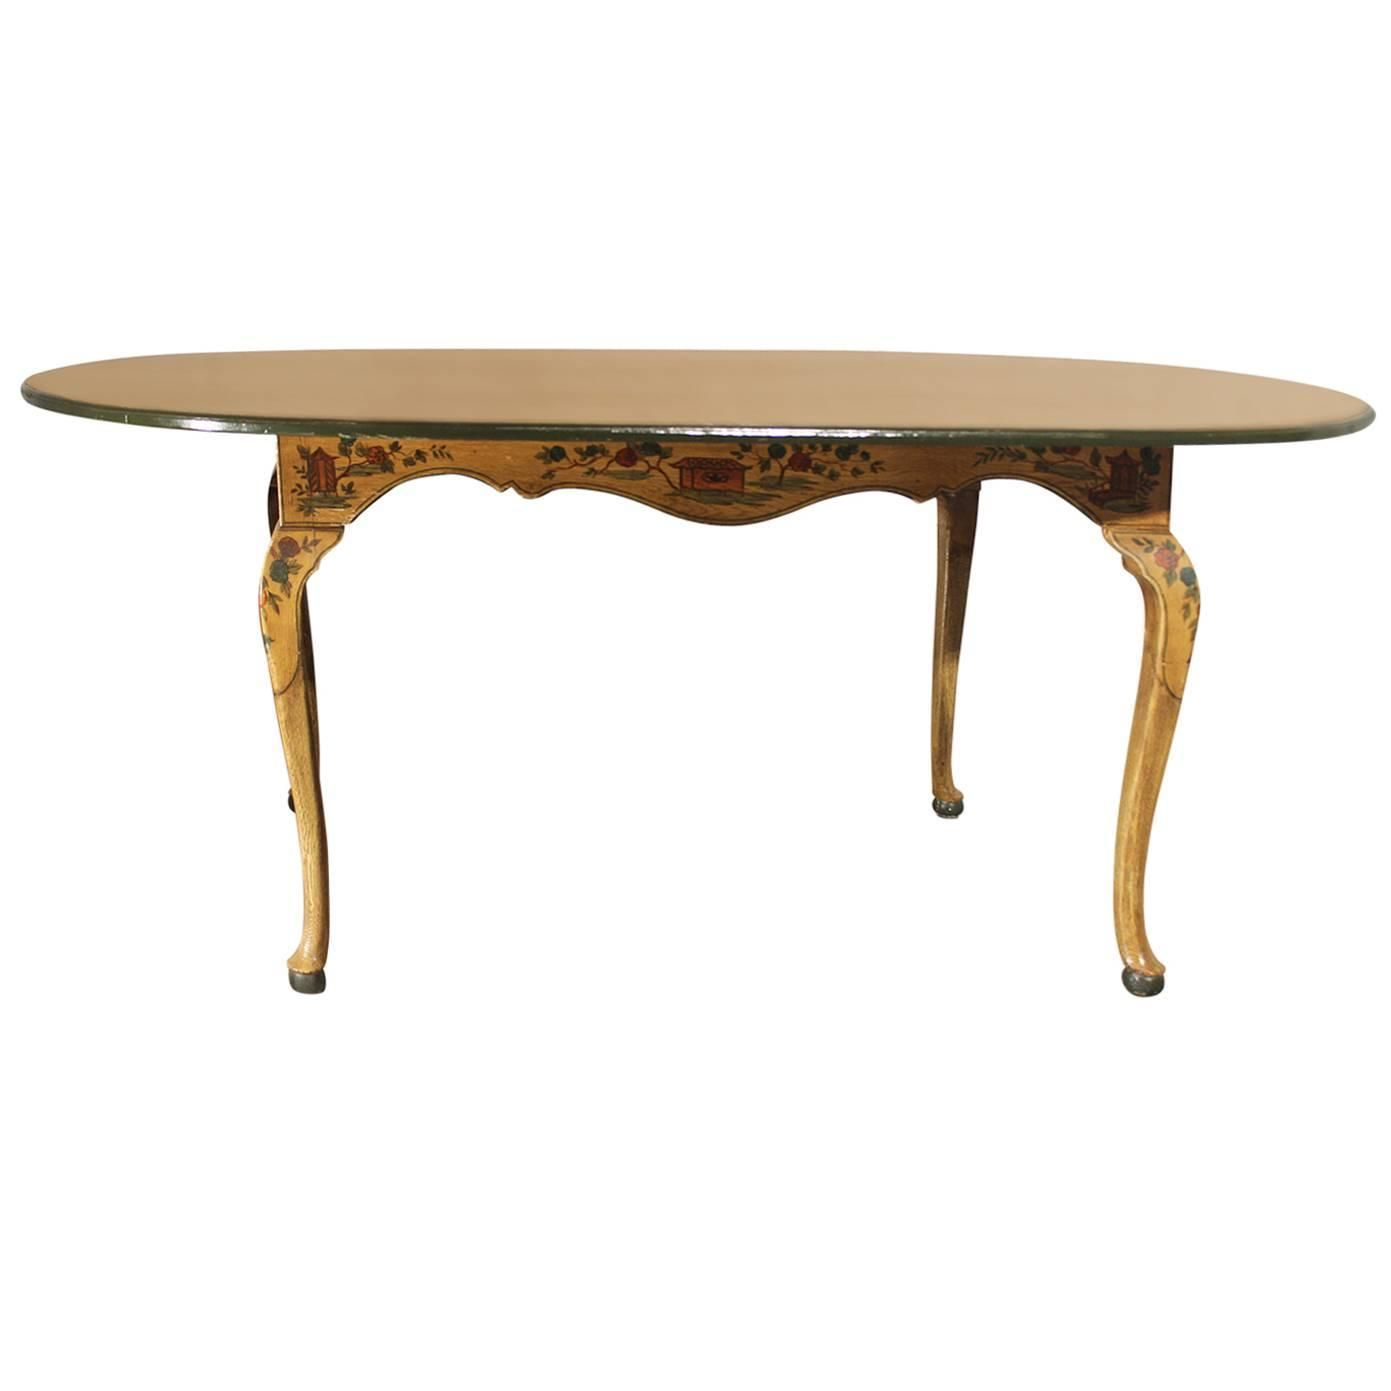 Antique Chinoiserie Hand Painted Oval Dining Table with Cabriole